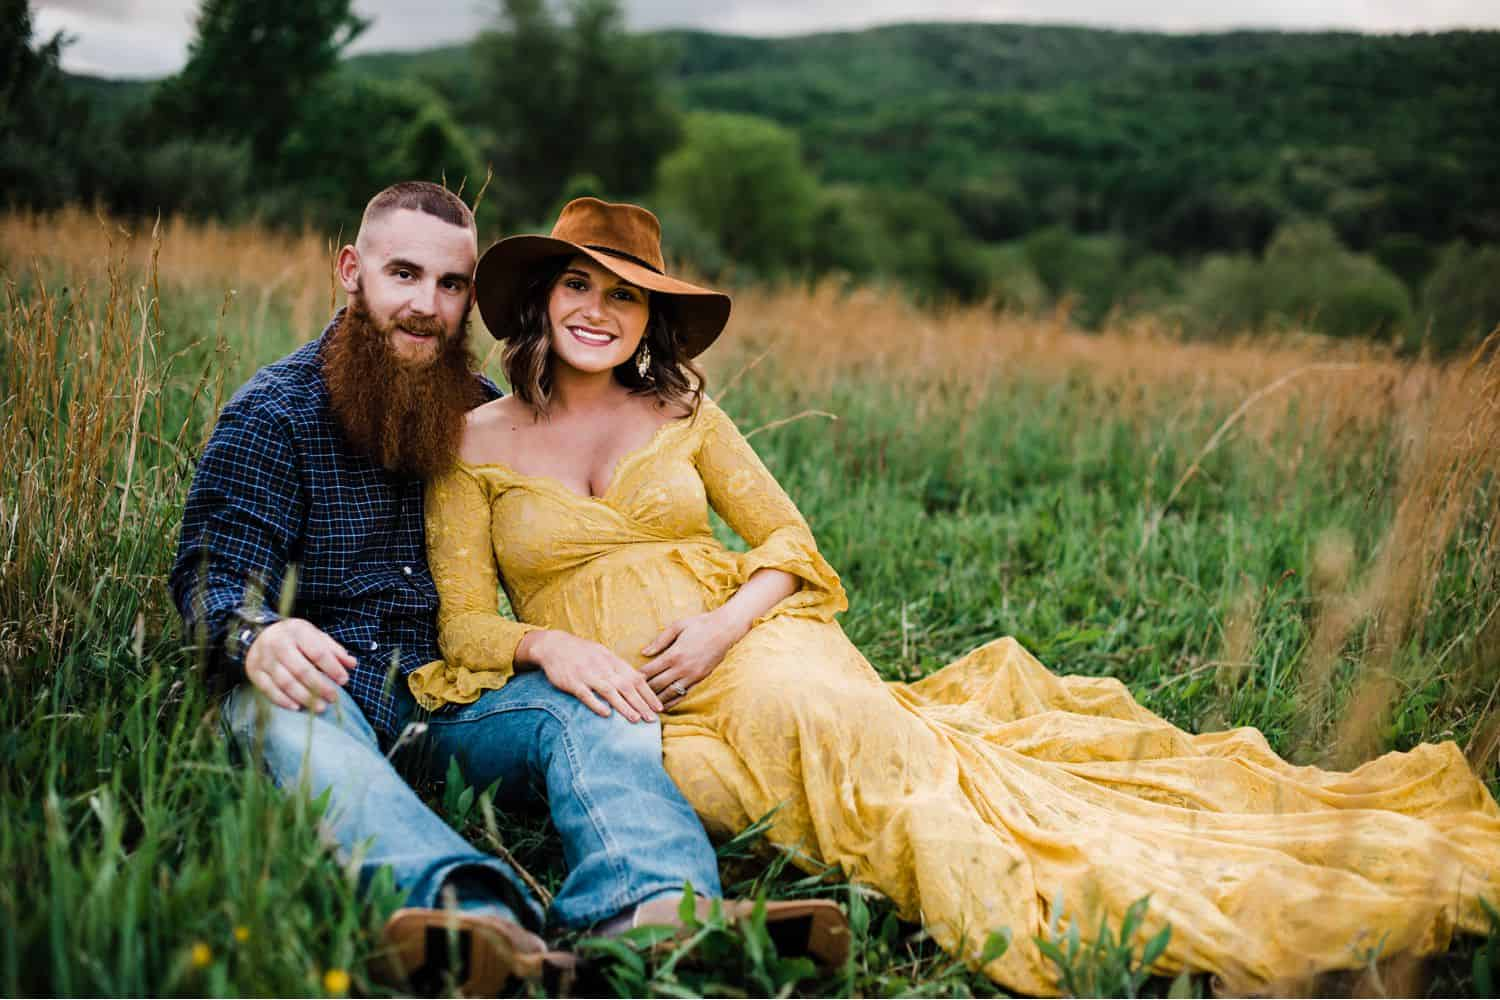 Maternity Poses: pregnant woman in a yellow dress and felt hat sits on the ground in a field with her husband who is wearing a plaid shirt